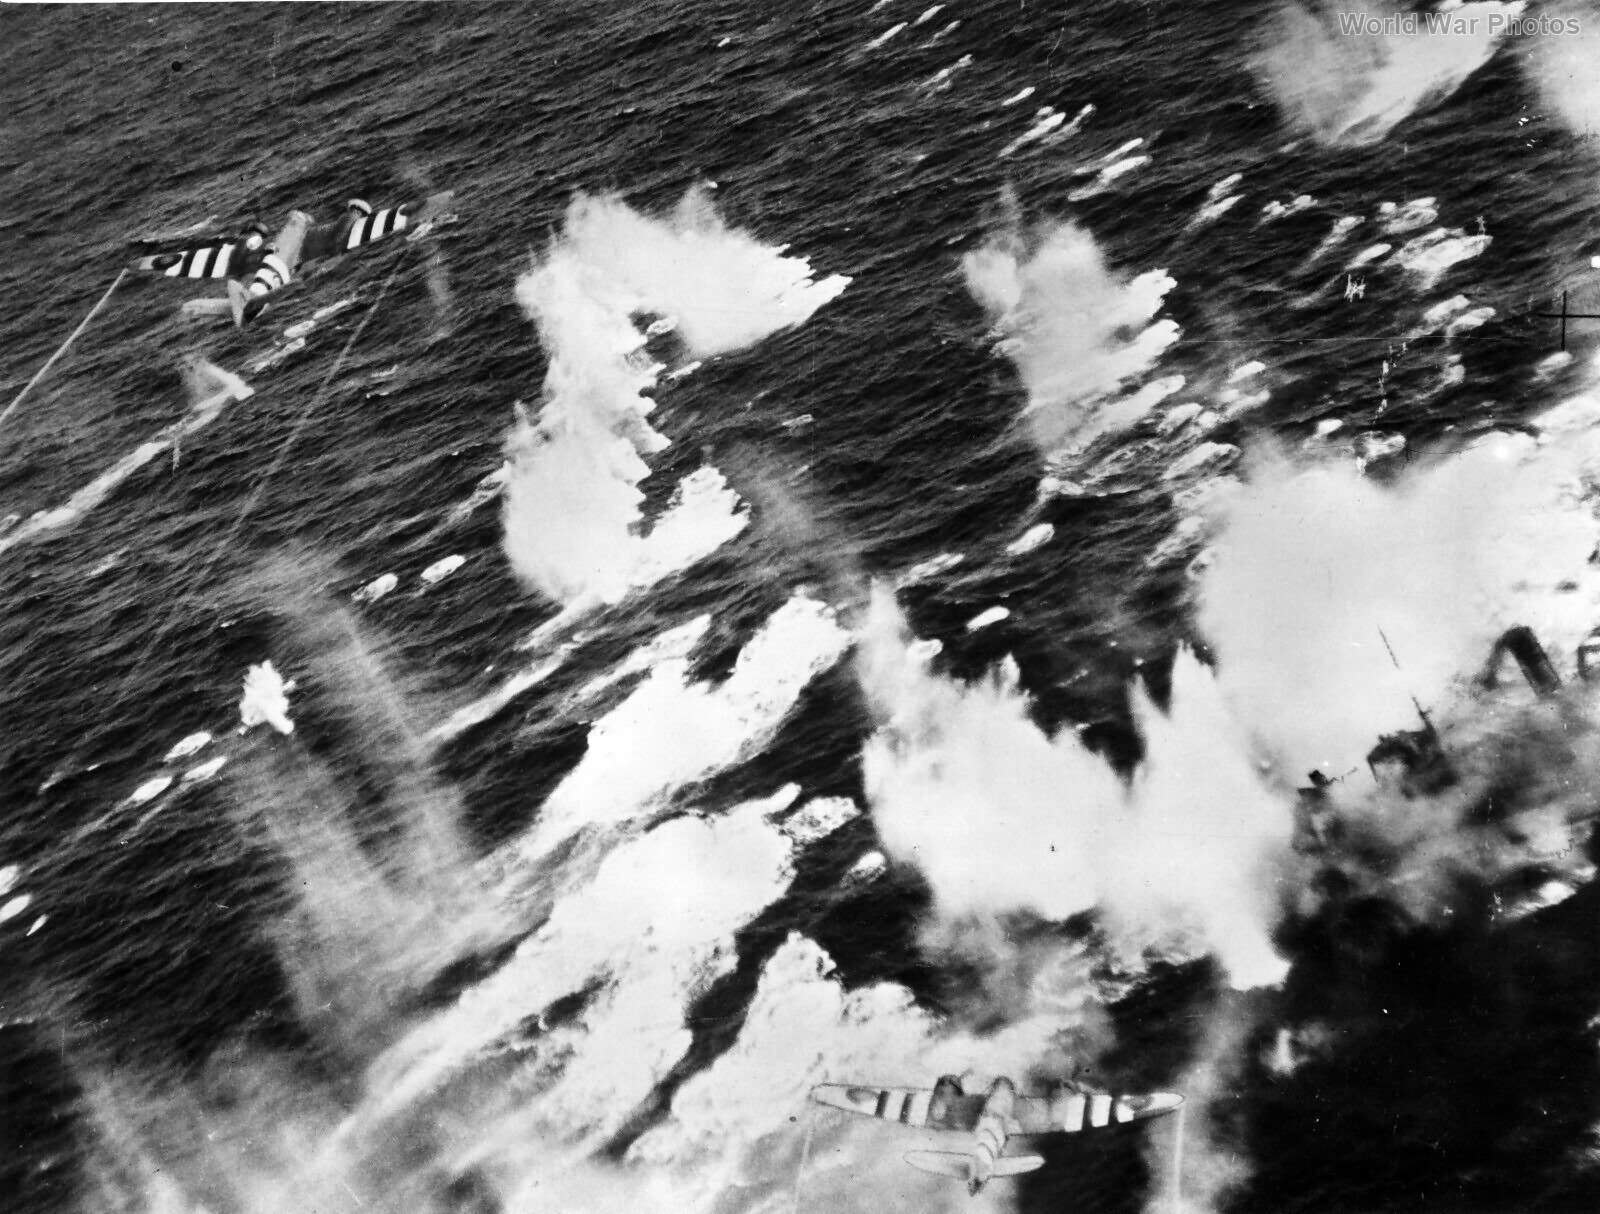 Beaufighter attack 236 Sqn